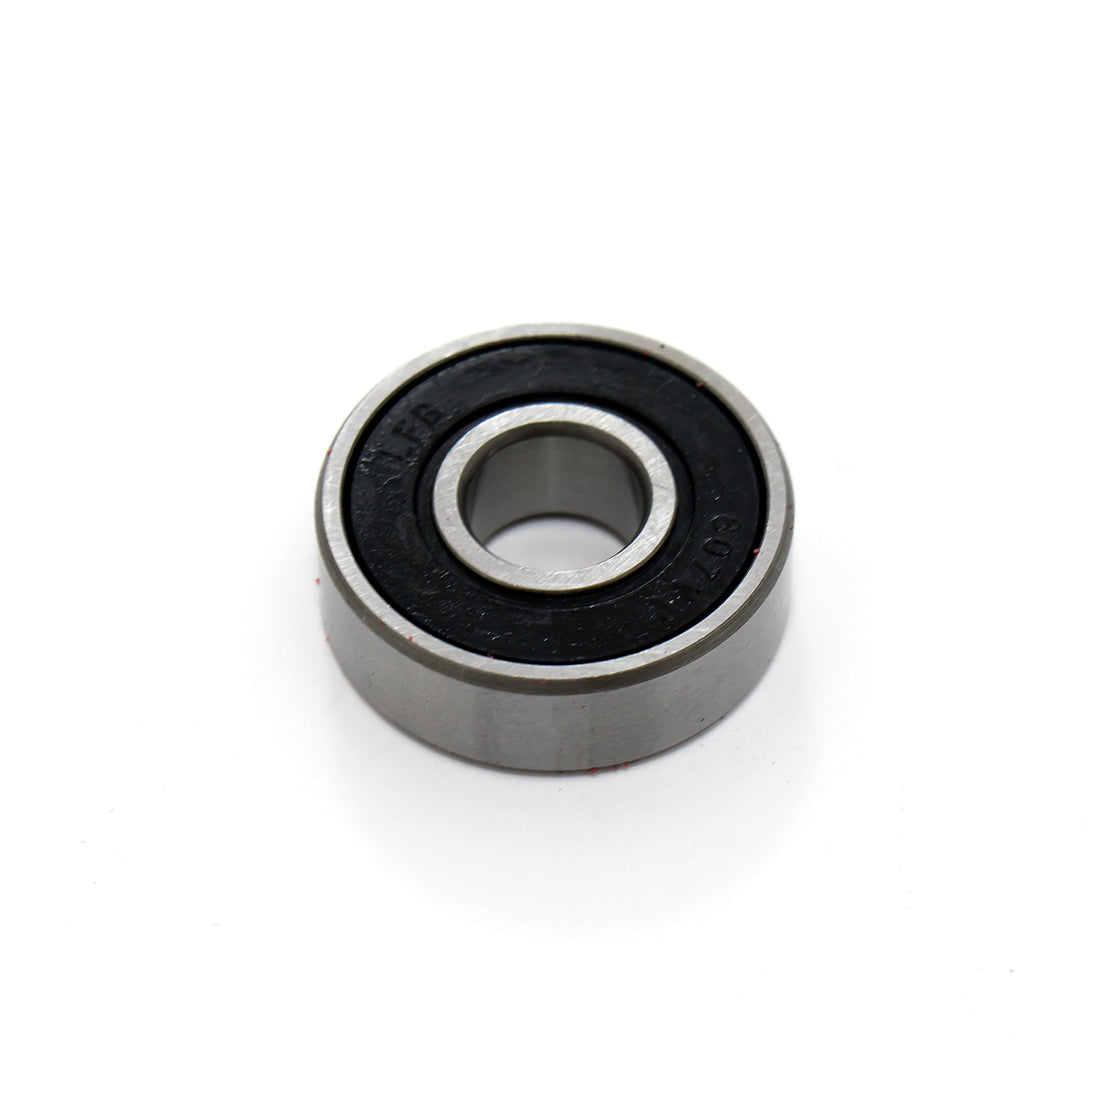 [MBA-038] 607 bearing - (For Polisher)